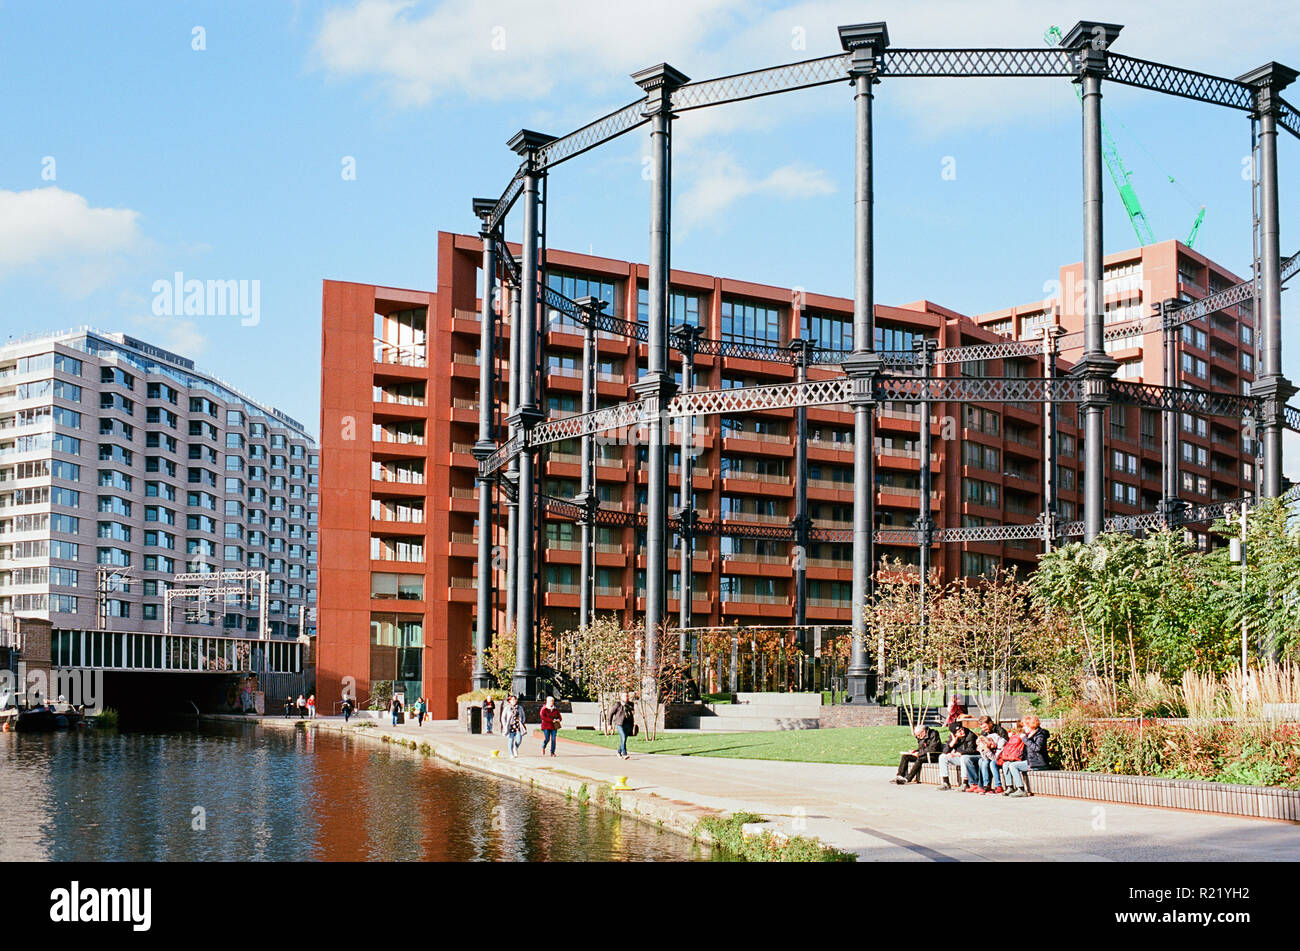 Gasholder Park and the Regents Canal at King's Cross, London UK Stock Photo